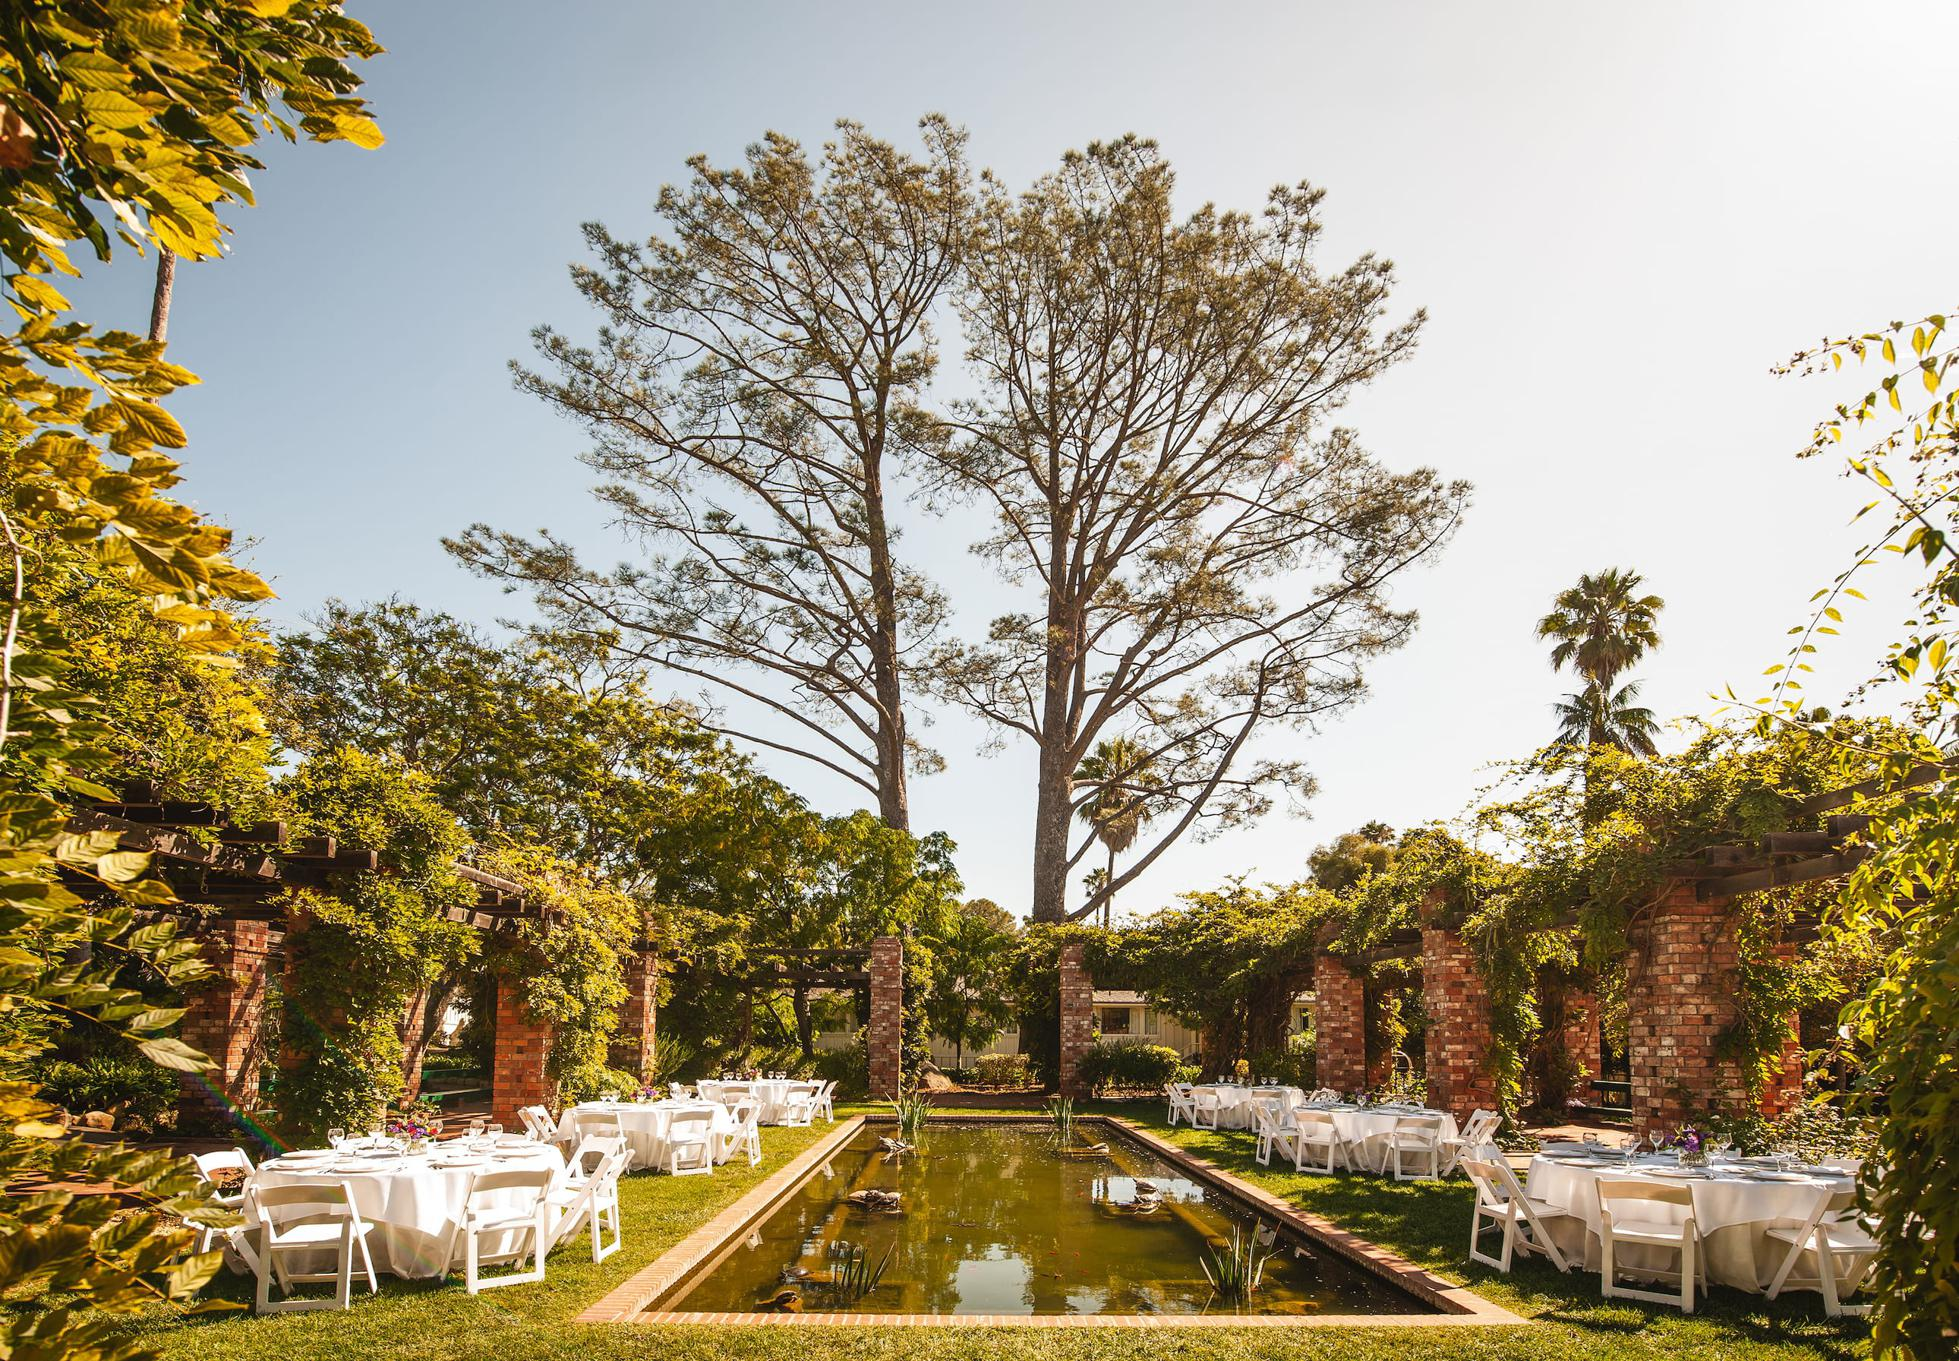 Filled with butterflies, the Arbor and Lily Ponds provide a serene escape for beautiful weddings, al fresco.